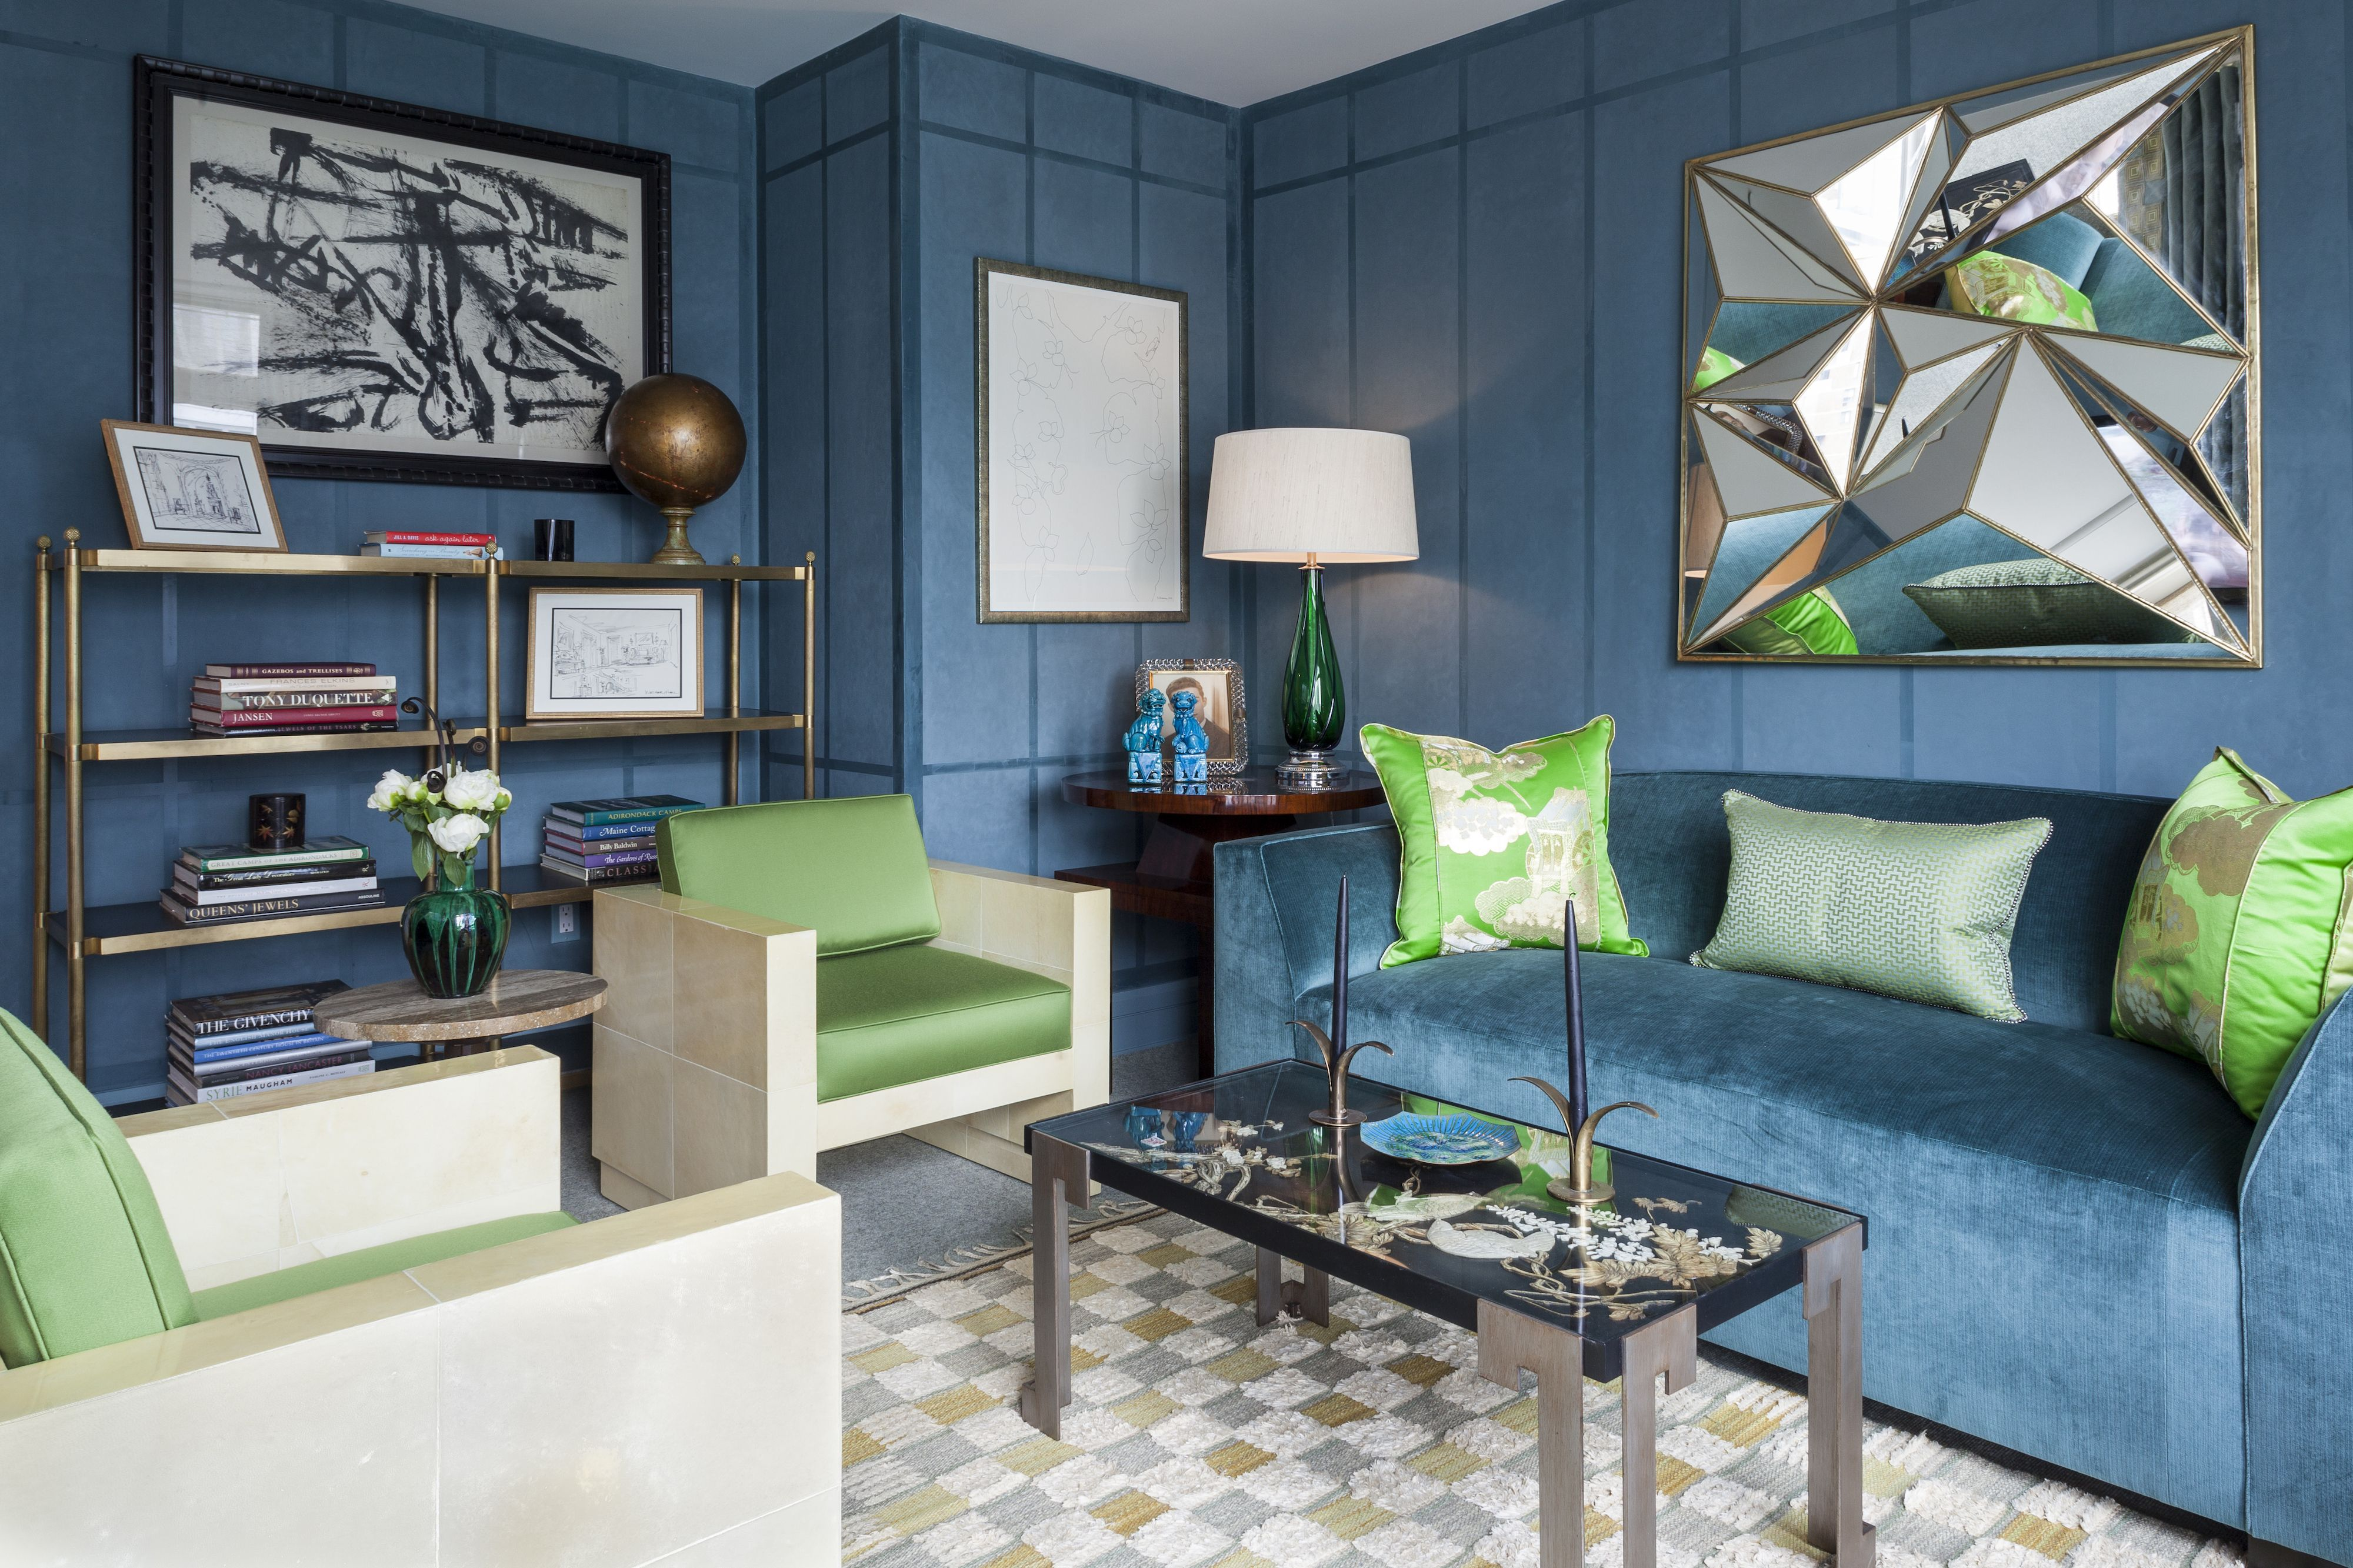 30 Room Colors For A Vibrant Home - Paint Colors For Bright Interior ...